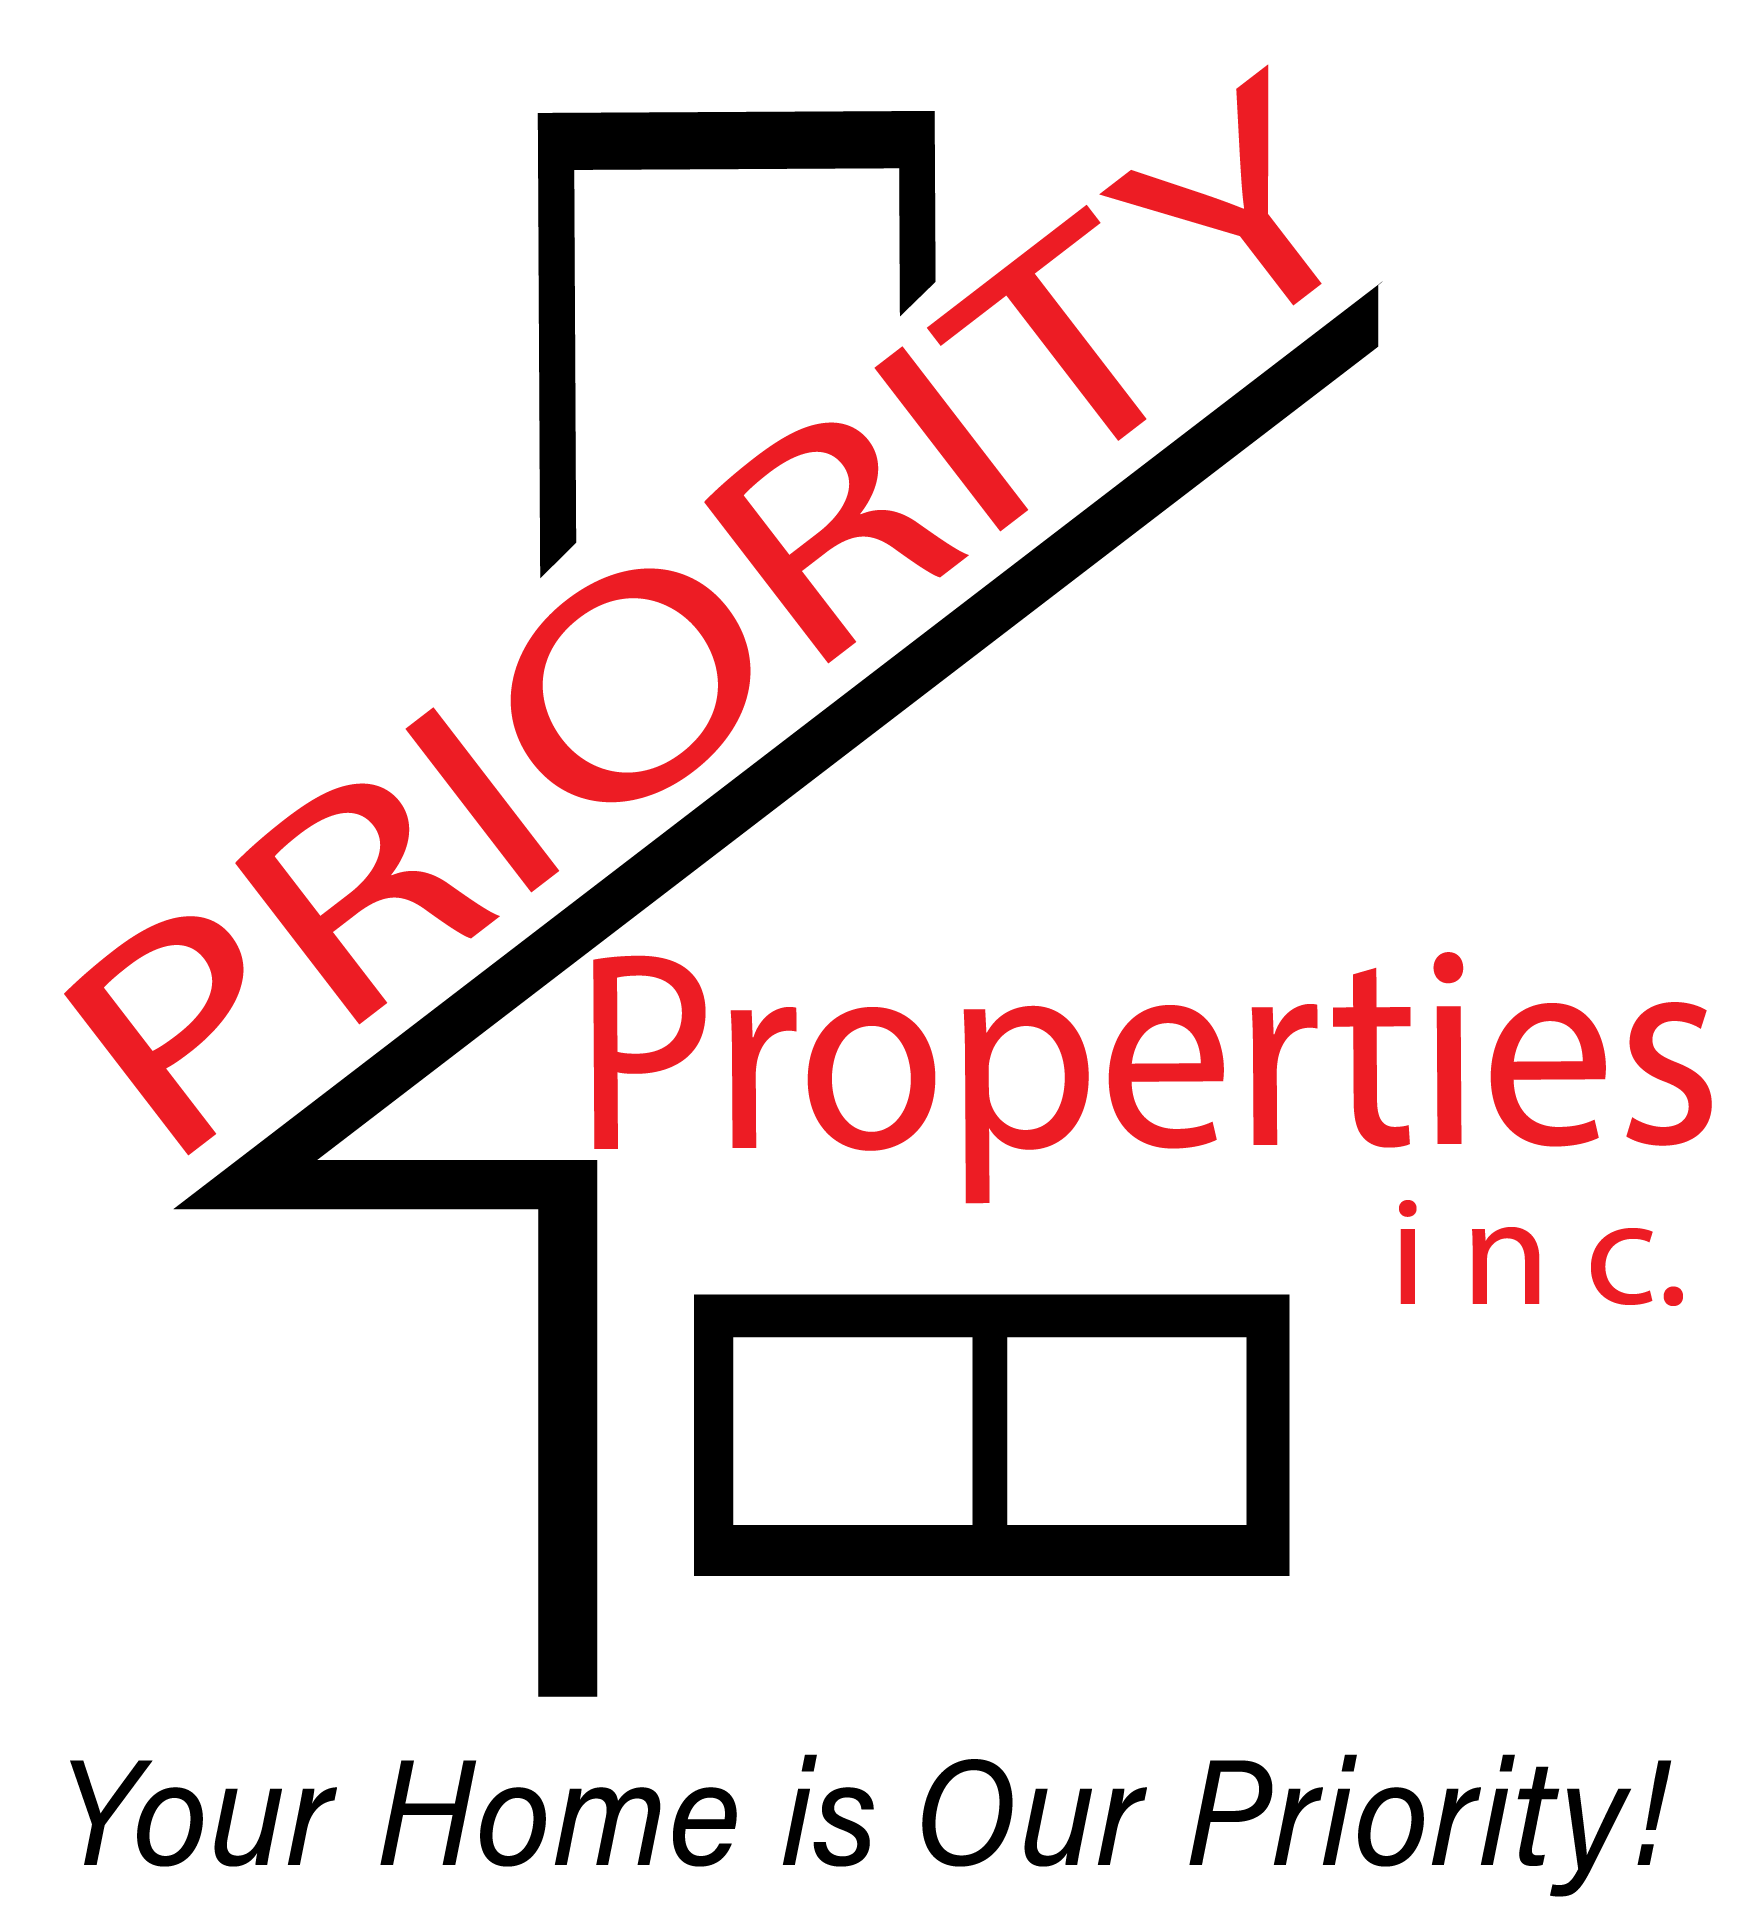 Priority Properties, Inc.